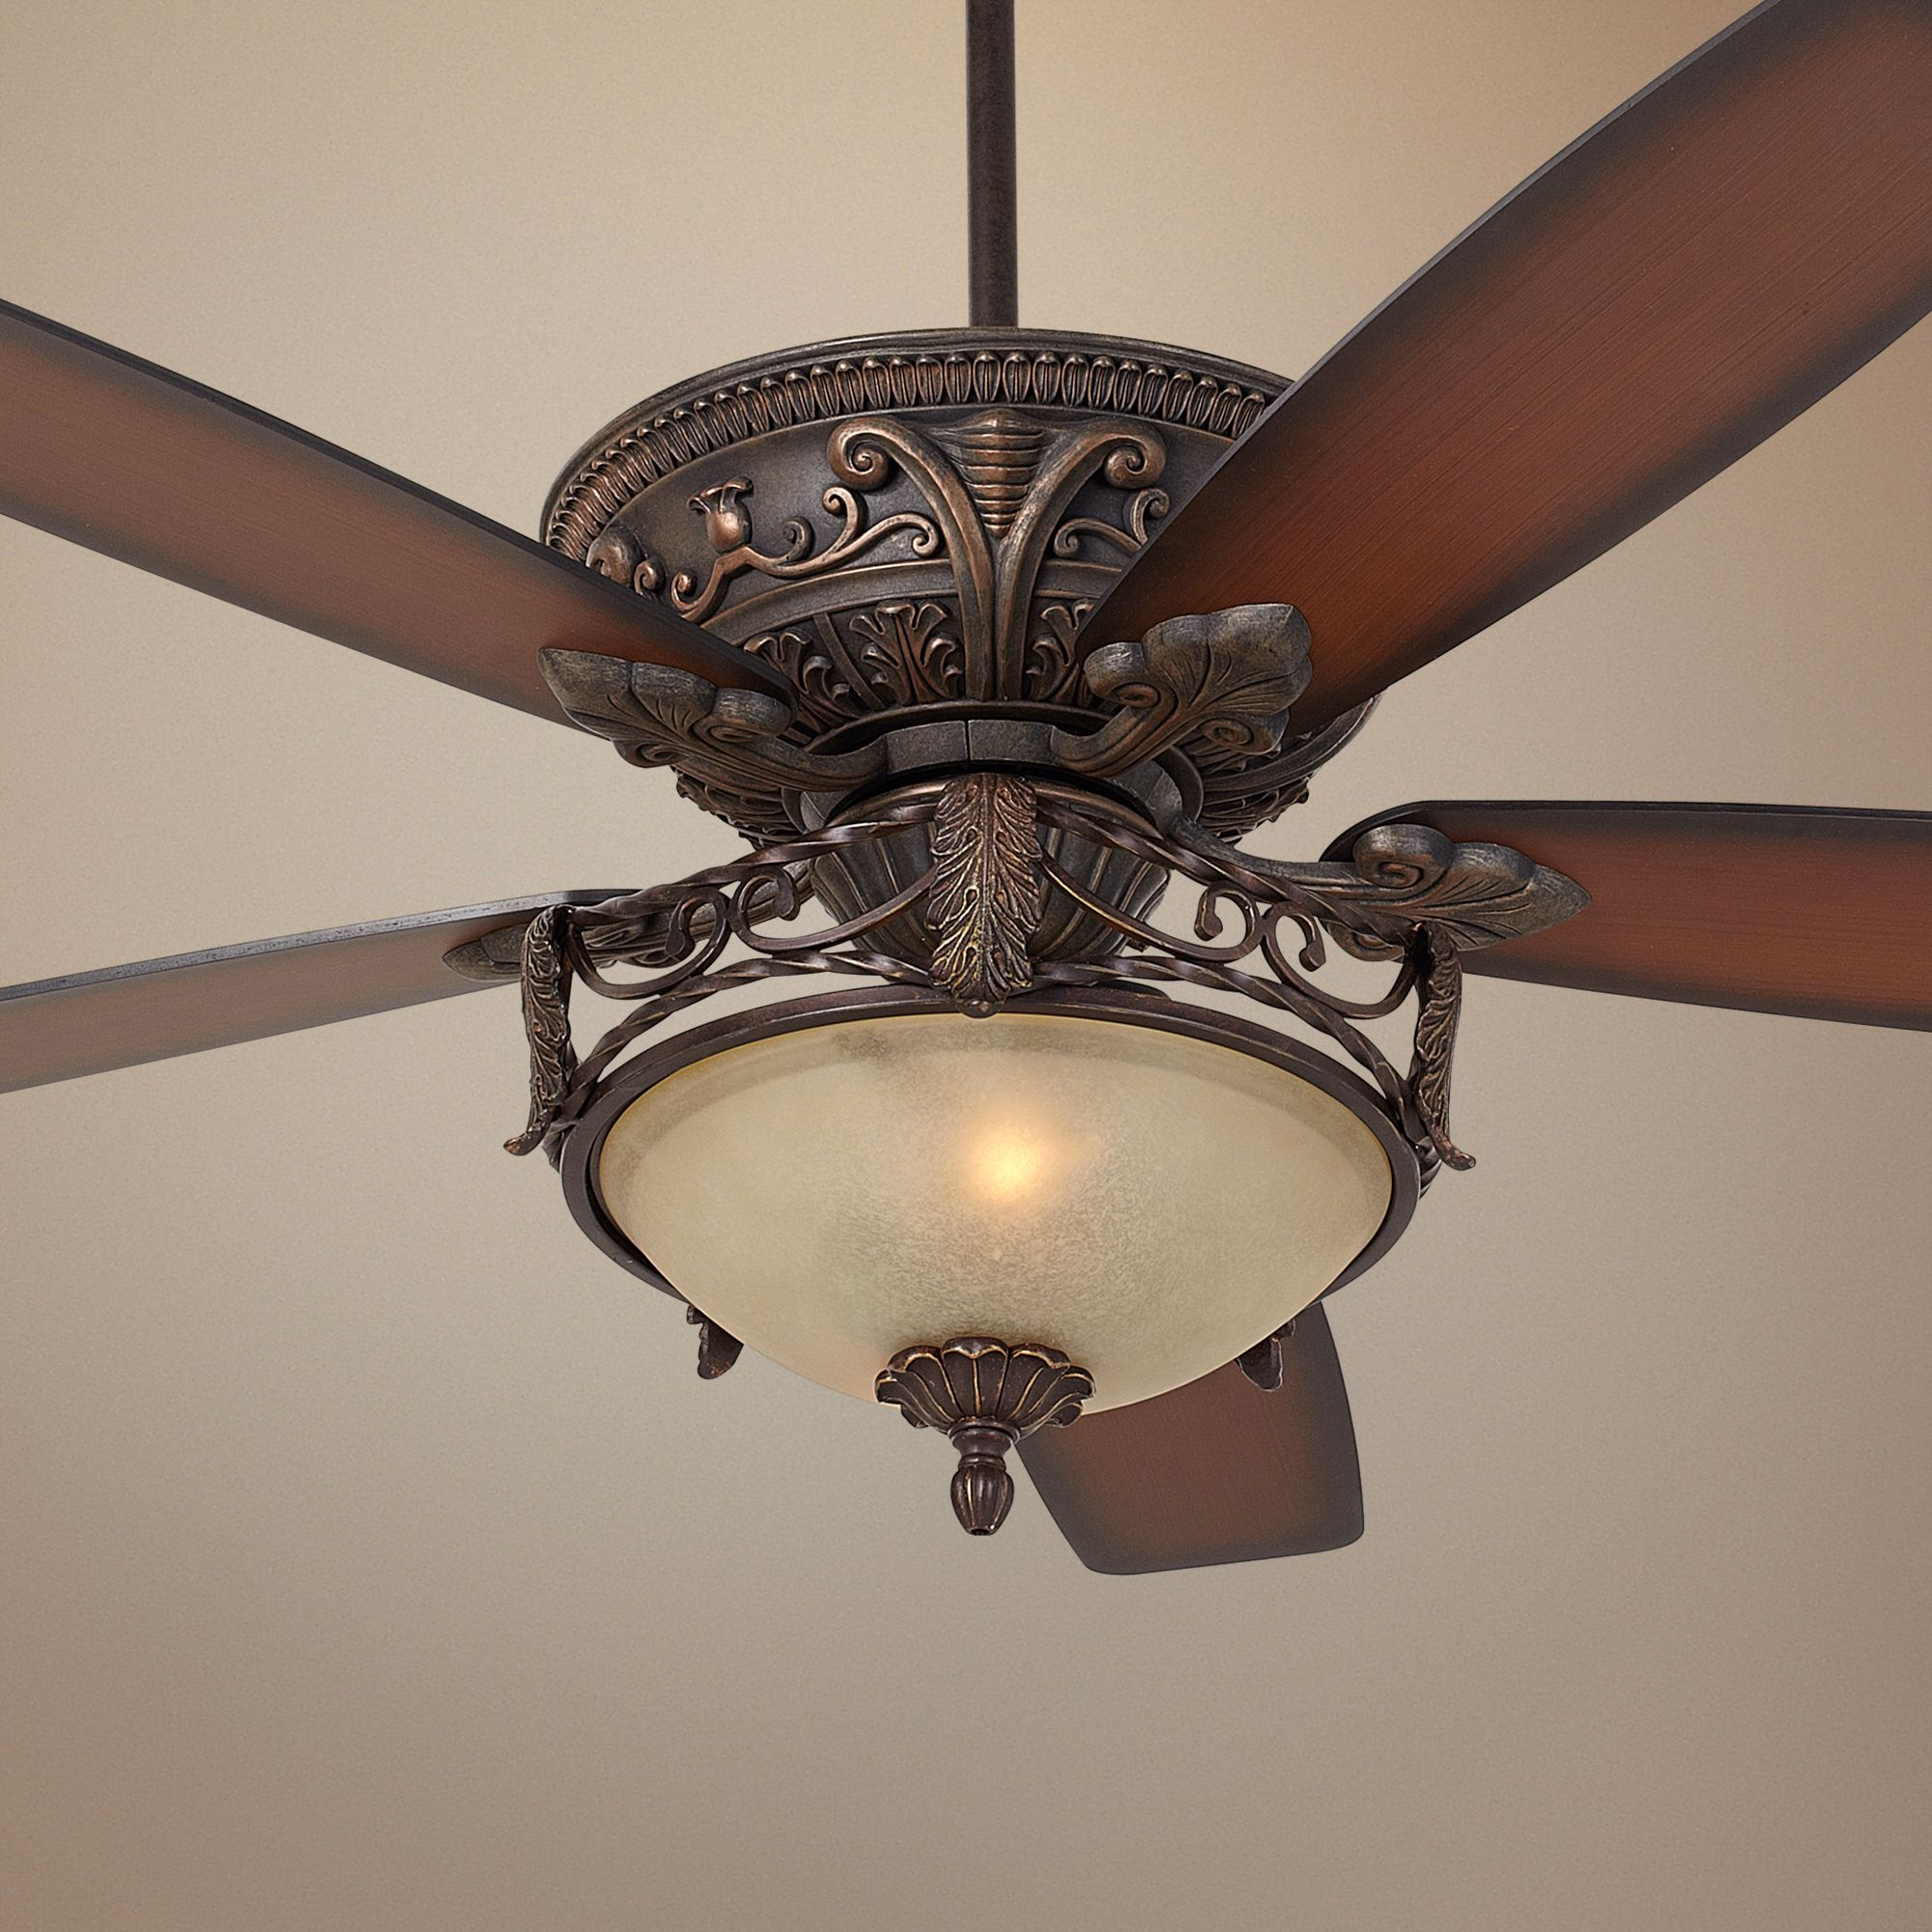 What are benefits of ceiling fans with lights?